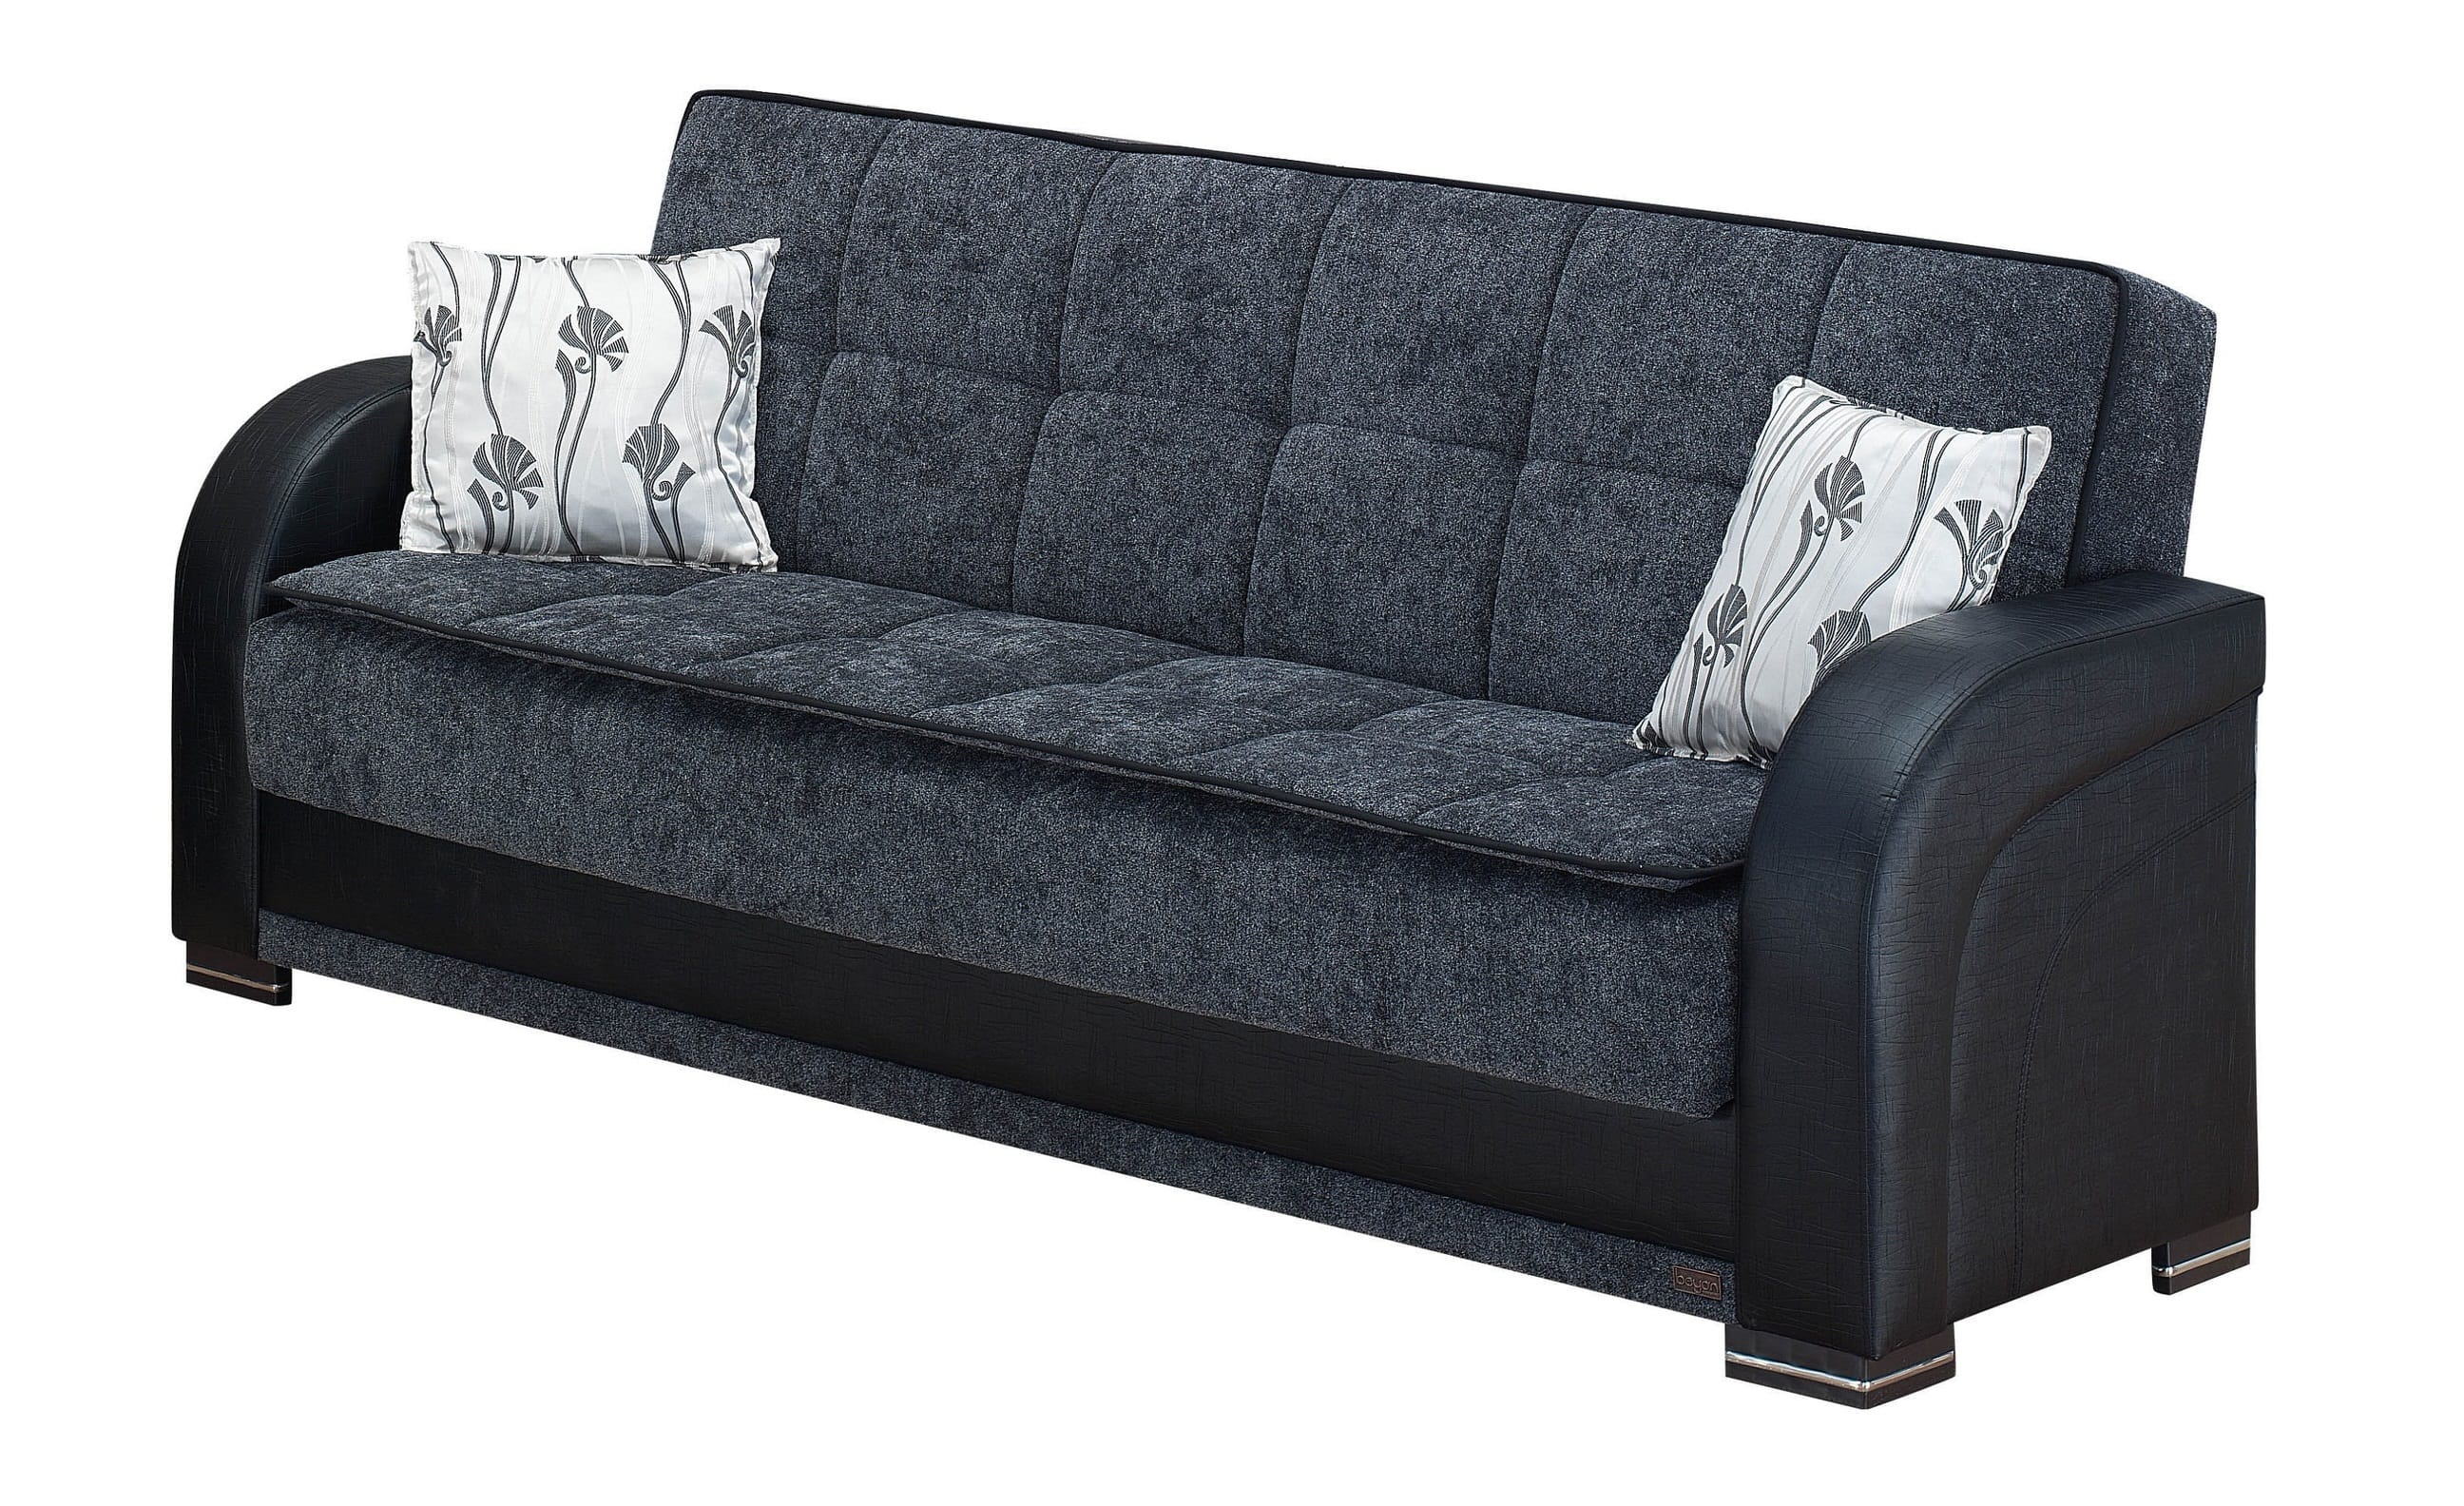 Oklahoma Sofa Bed by Empire Furniture USA